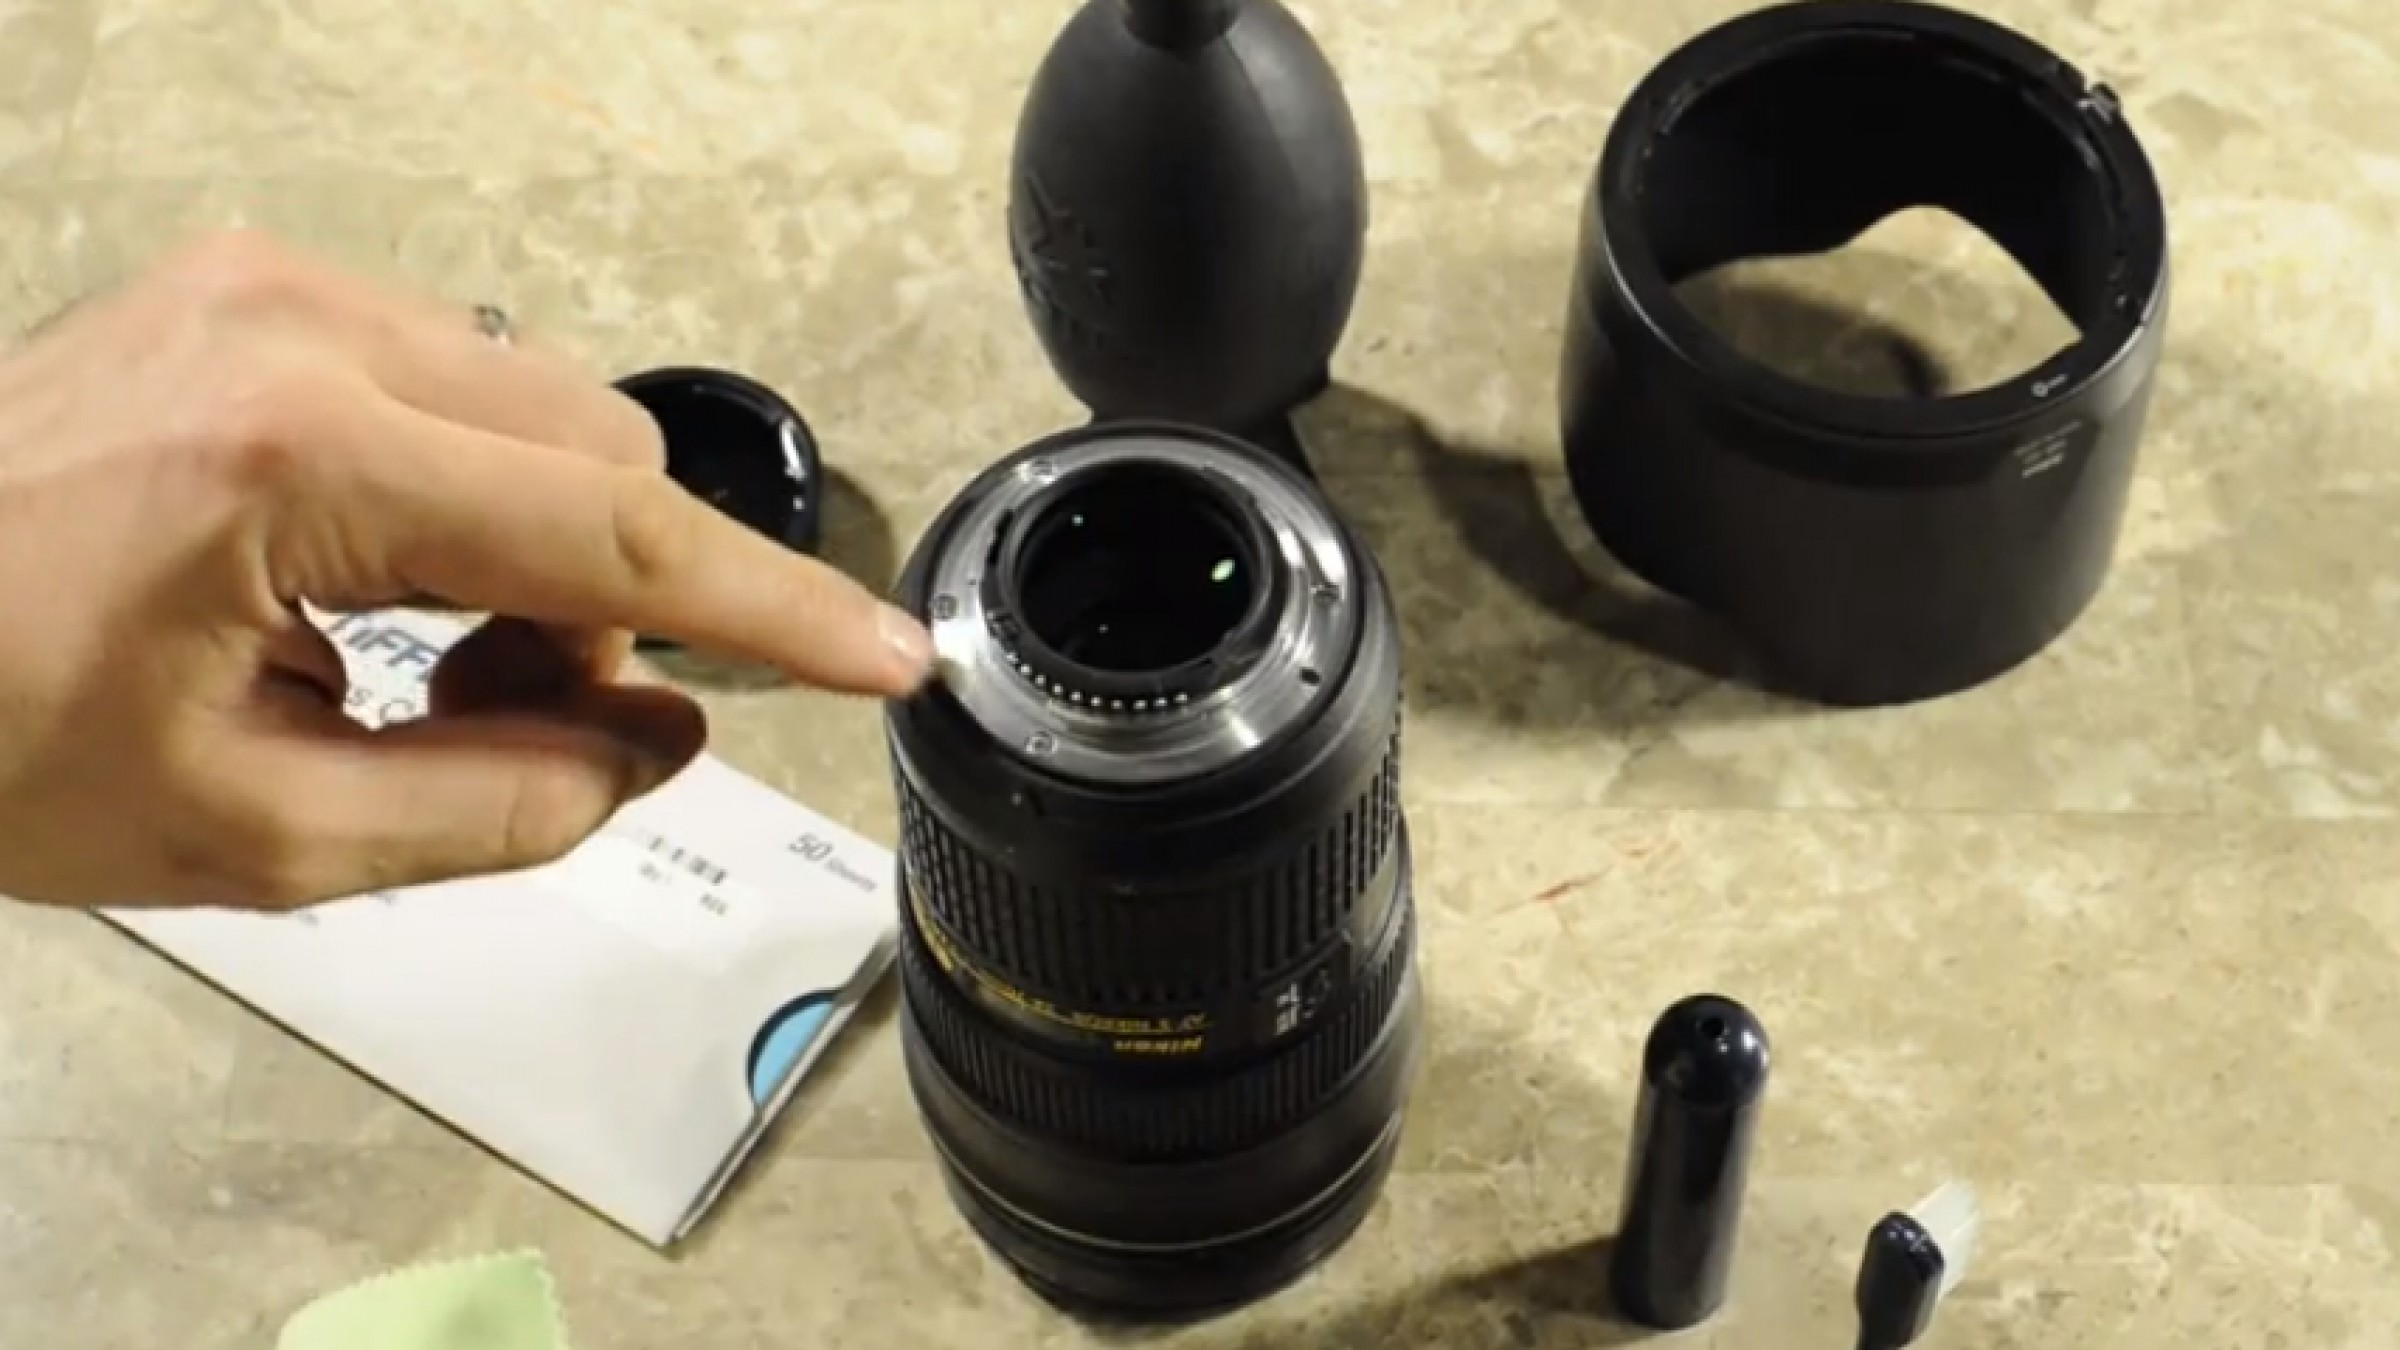 Taking Care Of Your Glass How To Clean Lenses Like A Pro And Drybox Camera Mirrorless Canon Eos M10 Protect Them From Fungus